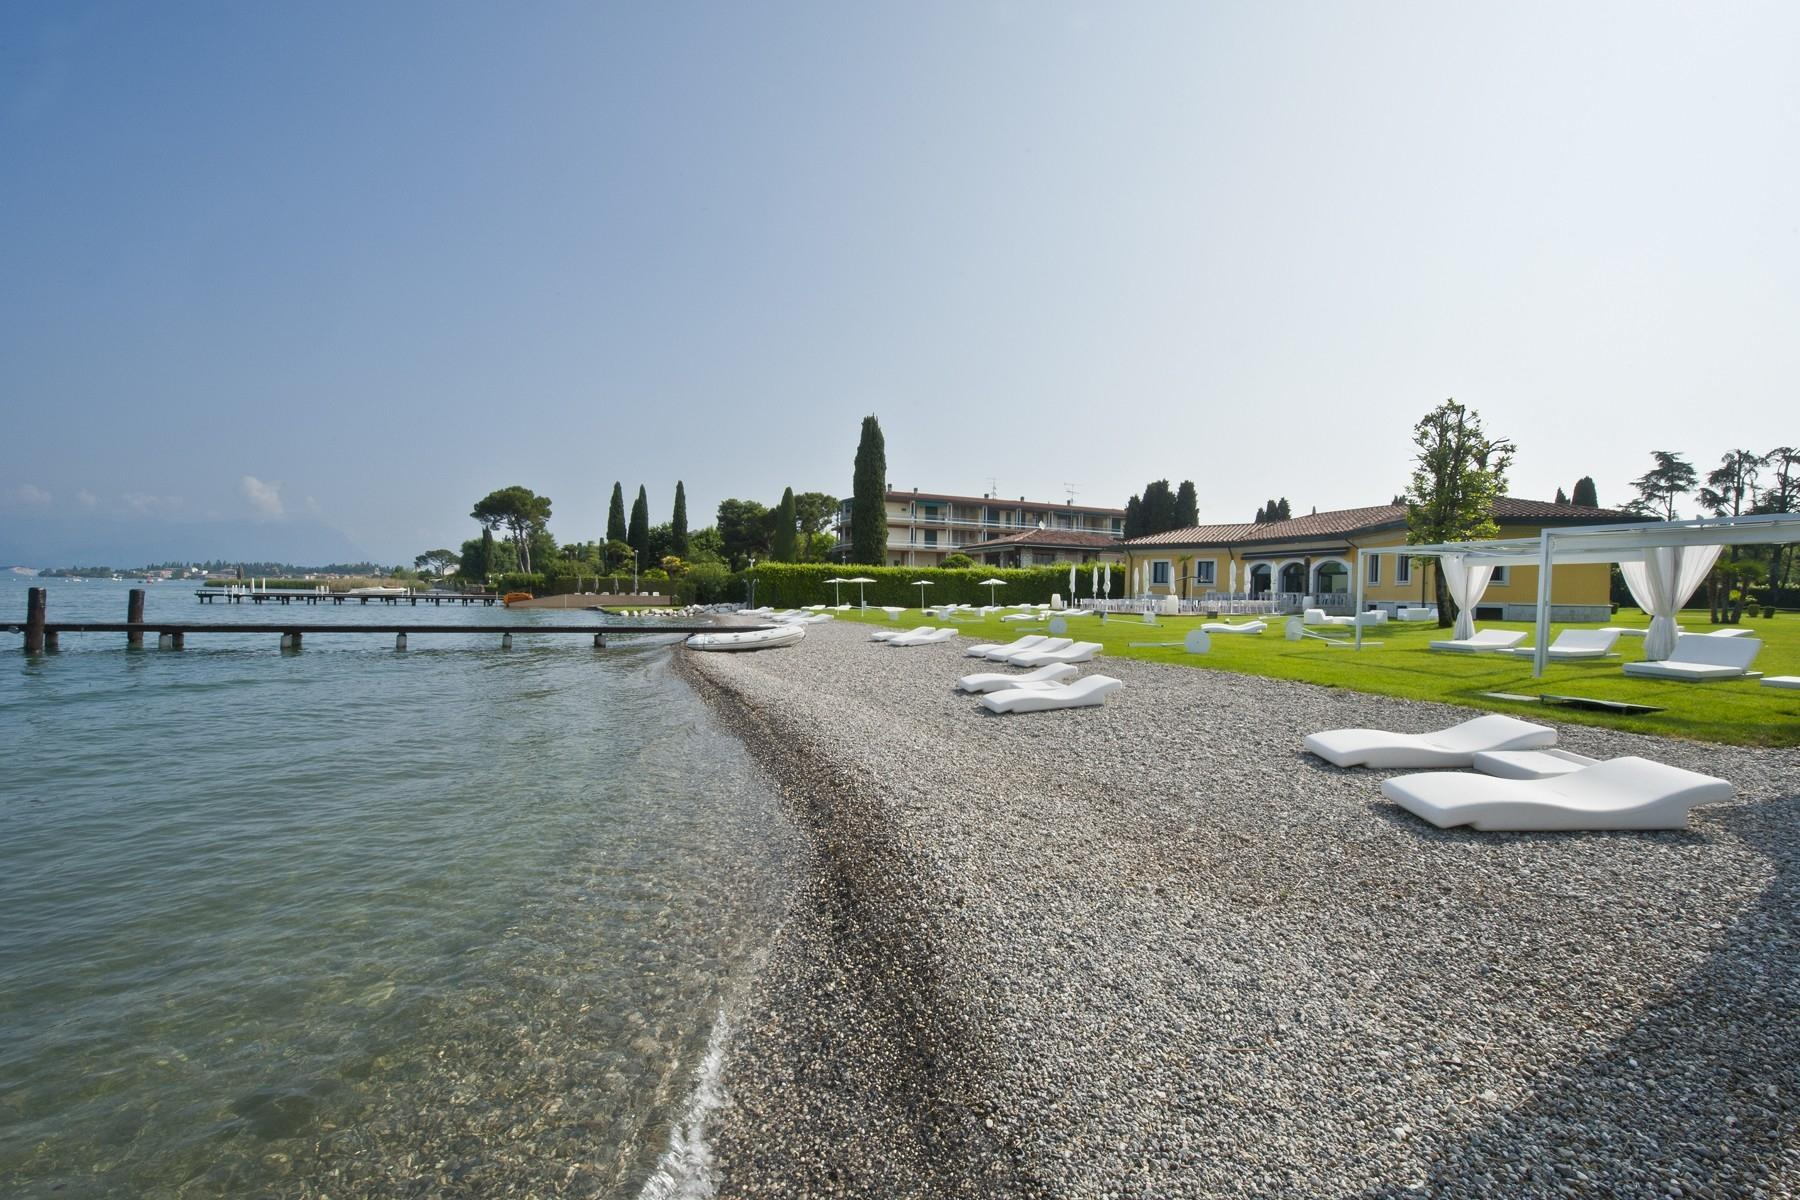 One of a kind Pieds dans l'eau villa with beach and dock in Sirmione - 12